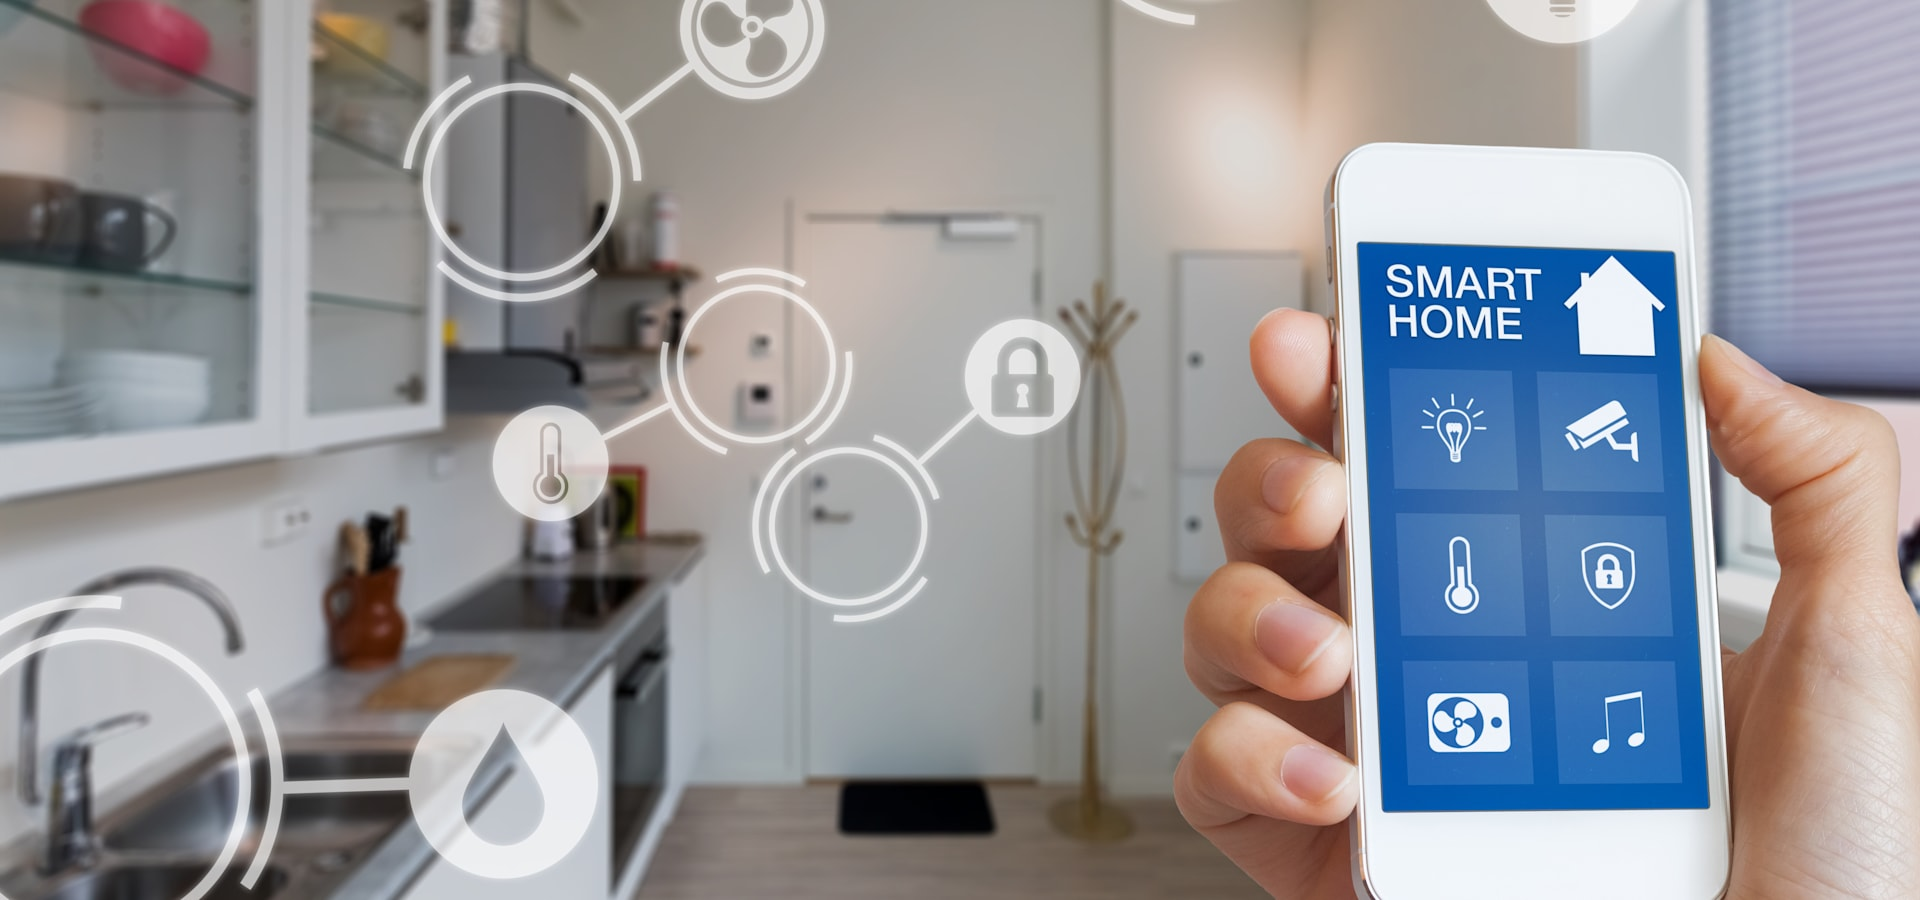 Smart Home System Design | homify